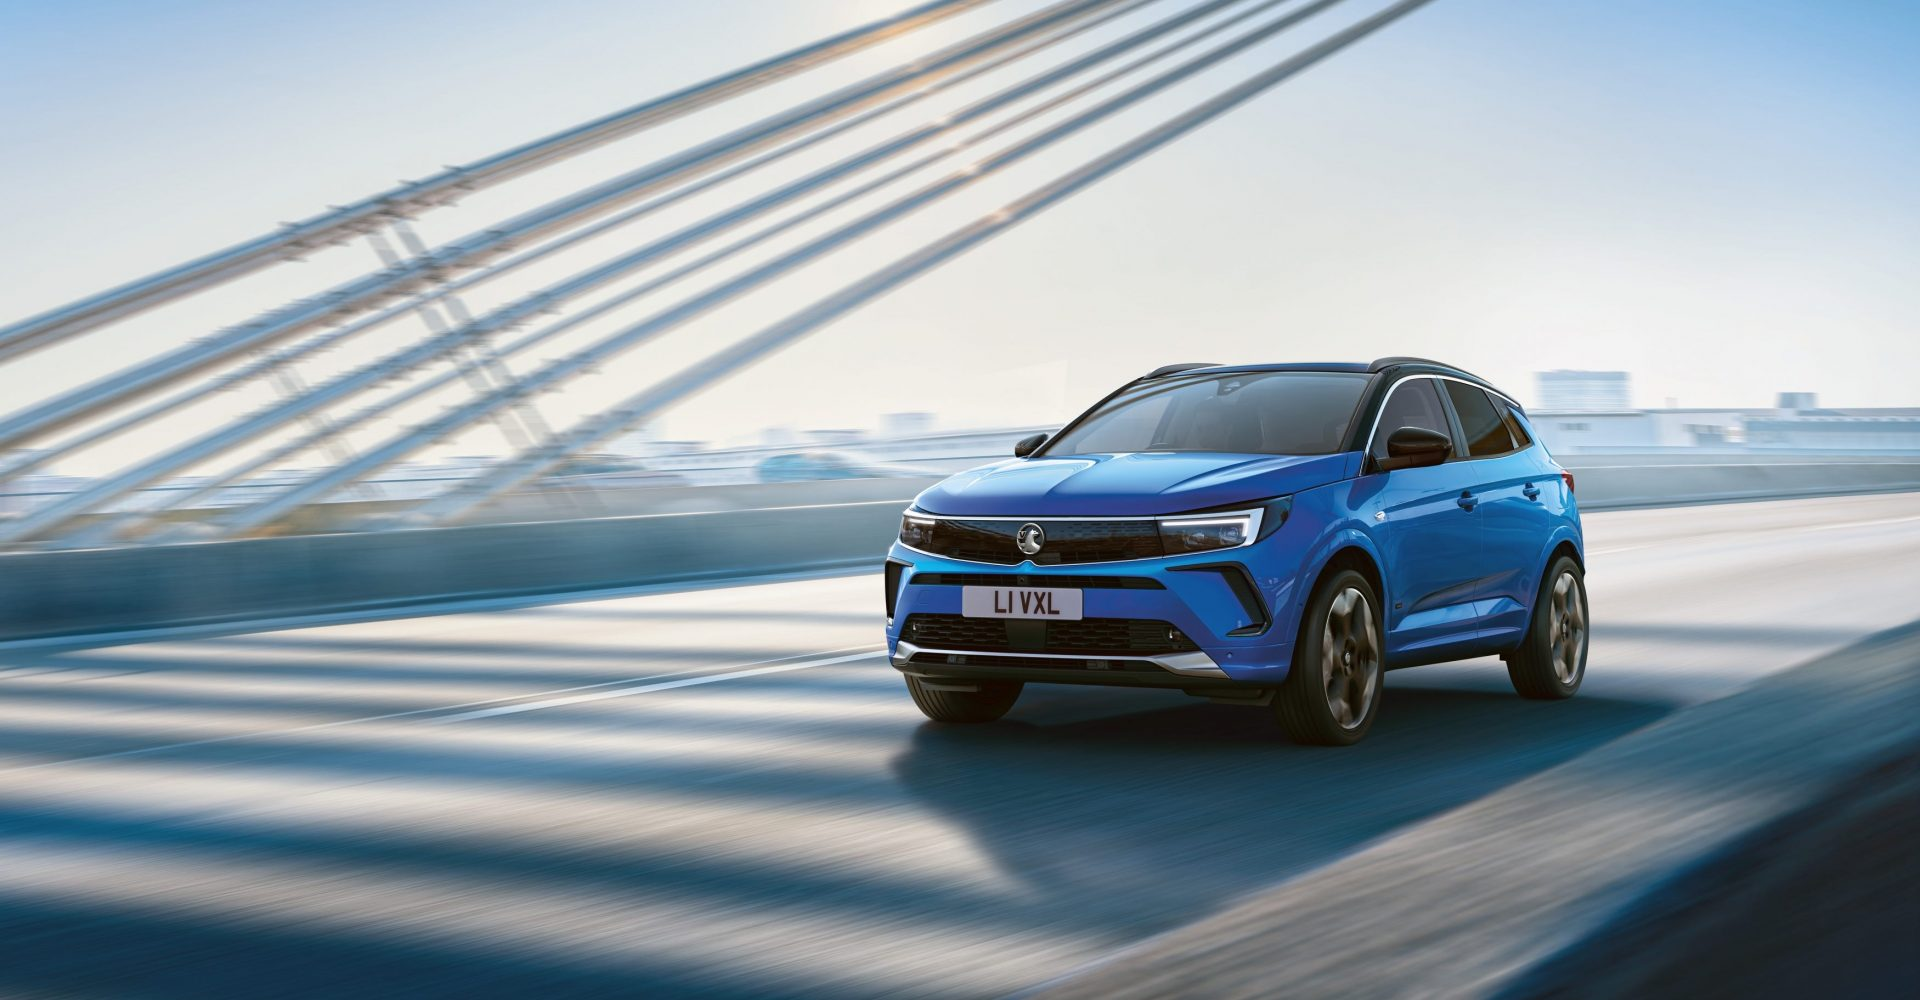 The Vauxhall Grandland SUV has been given a mid-life refresh